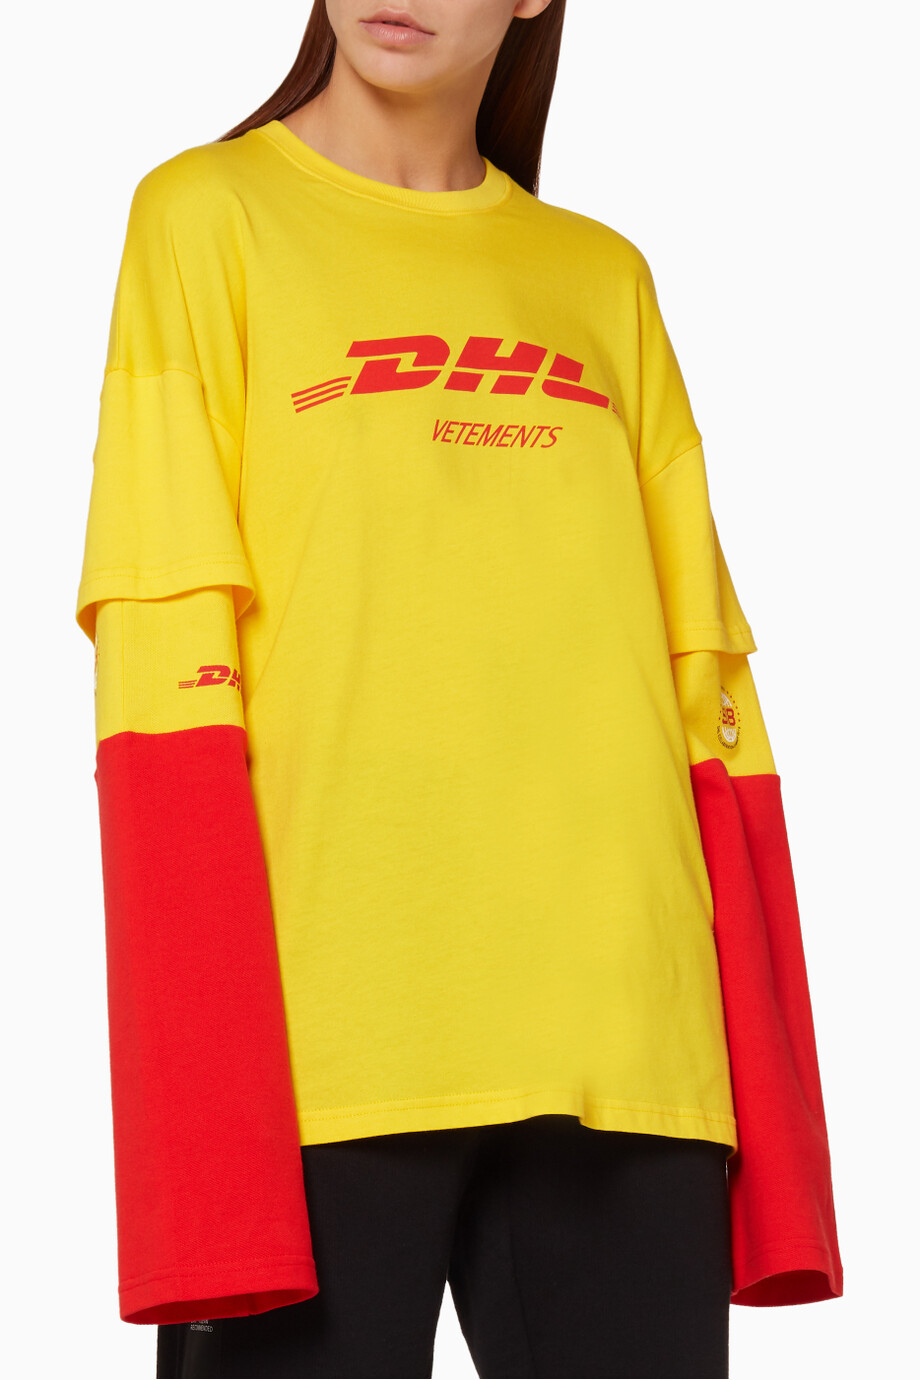 eda921ee2e15 Shop Vetements Yellow Yellow DHL Printed Long Sleeved T-Shirt for ...